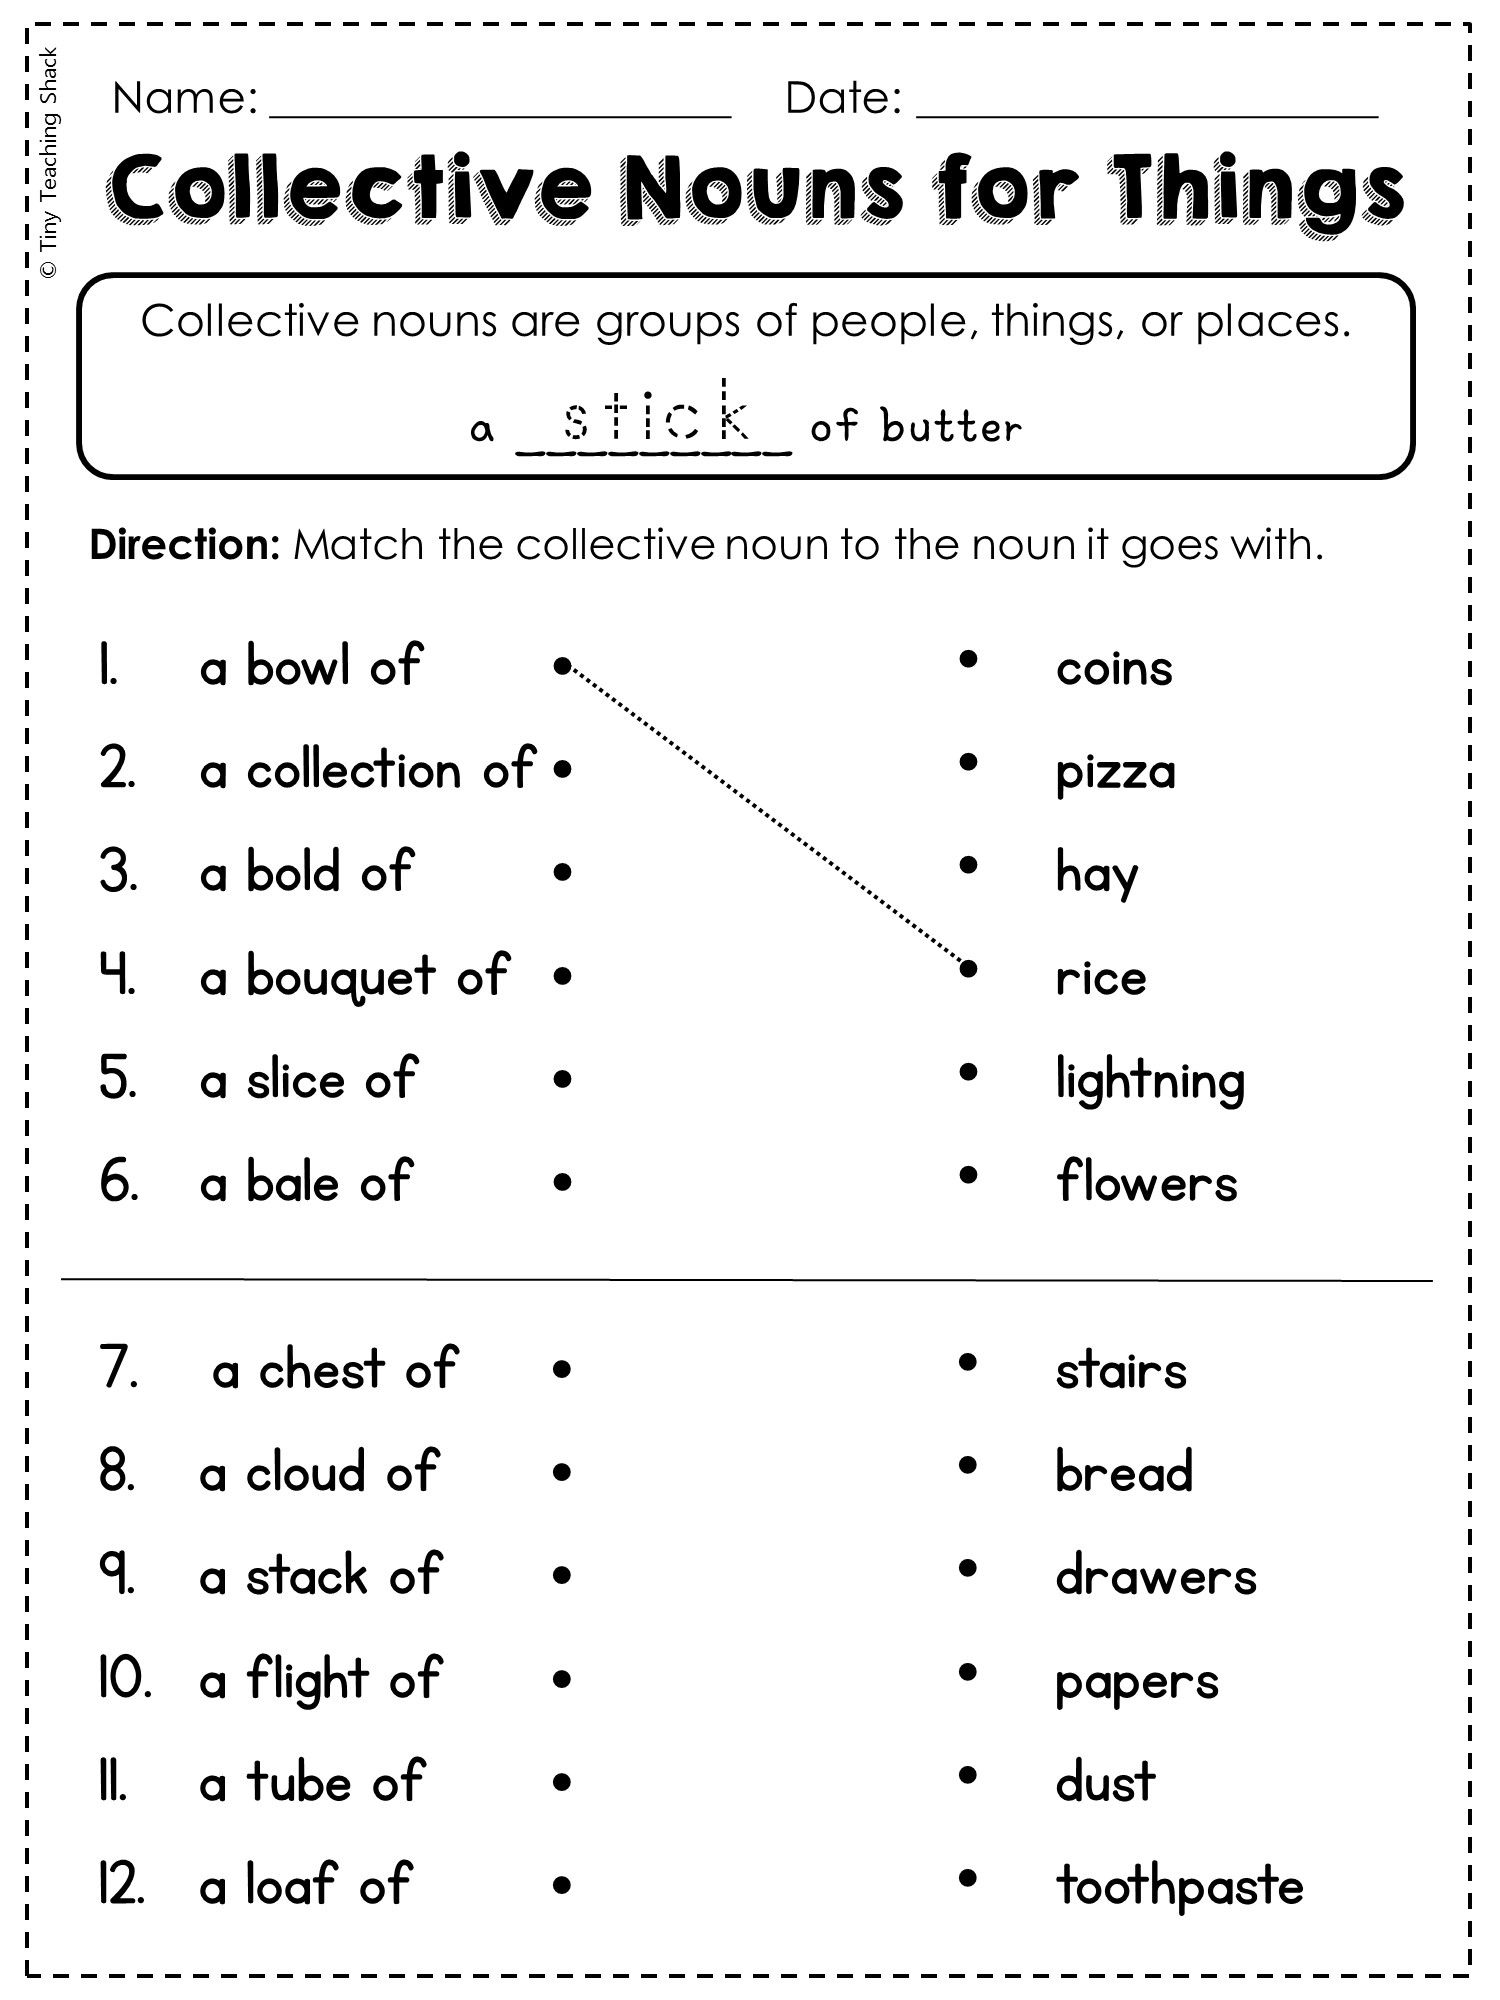 Free Collective Noun Worksheets